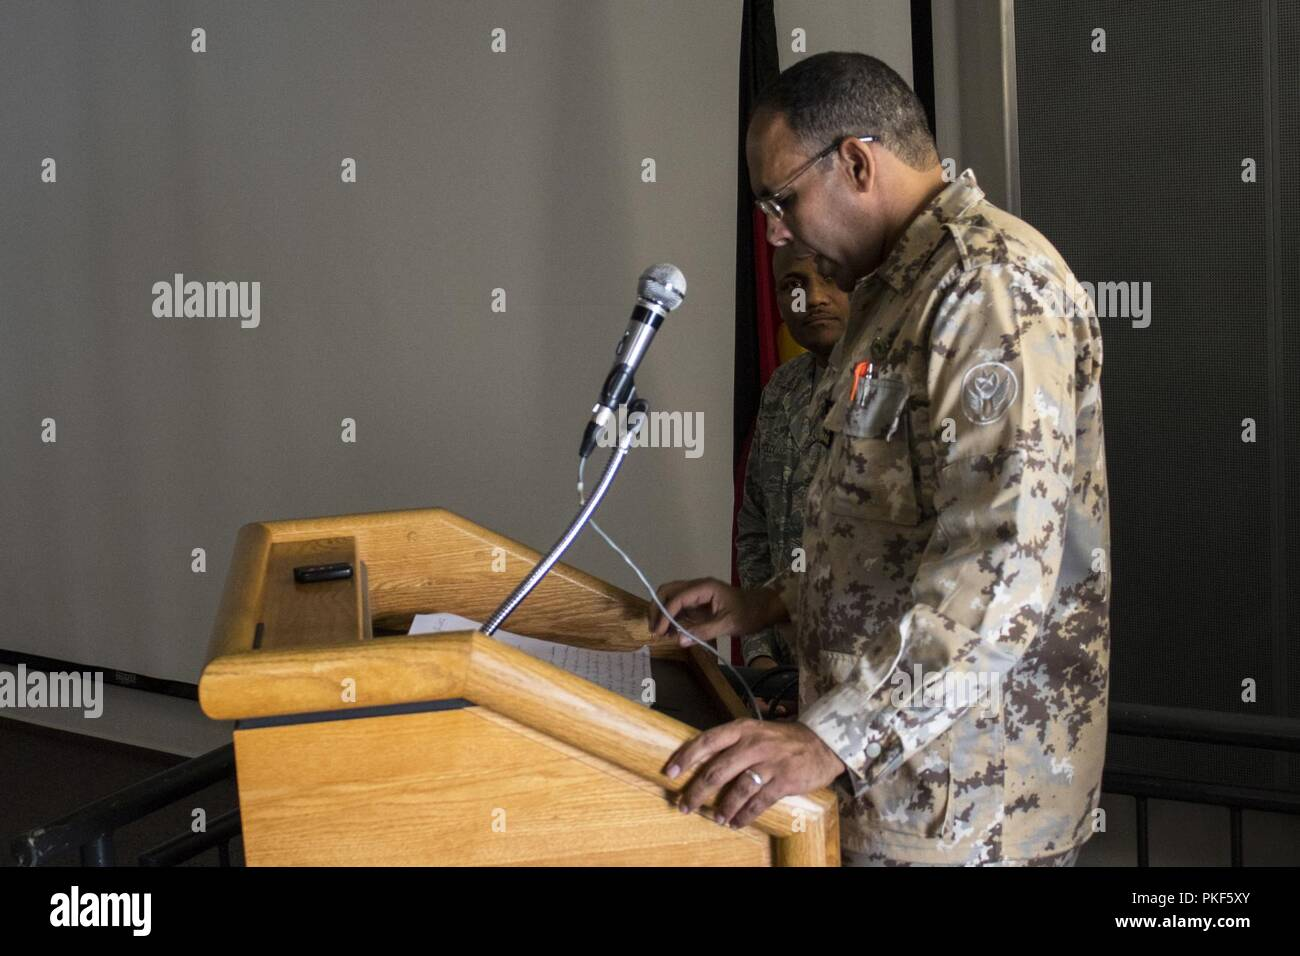 Mauritania Lt. Col. Ahmend Salem Hamza, Senior Advisor Air Chief, gives a speech to the participants of African Partnership Flight, hosted by U.S. Air Forces Africa and co-hosted by Mauritania and Senegal during its opening ceremony at Ramstein Air Base, Germany, Aug. 6, 2018. The APF program is Air Forces in Africa's premier security cooperation program with African partner nations to improve professional military aviation knowledge and skills. - Stock Image